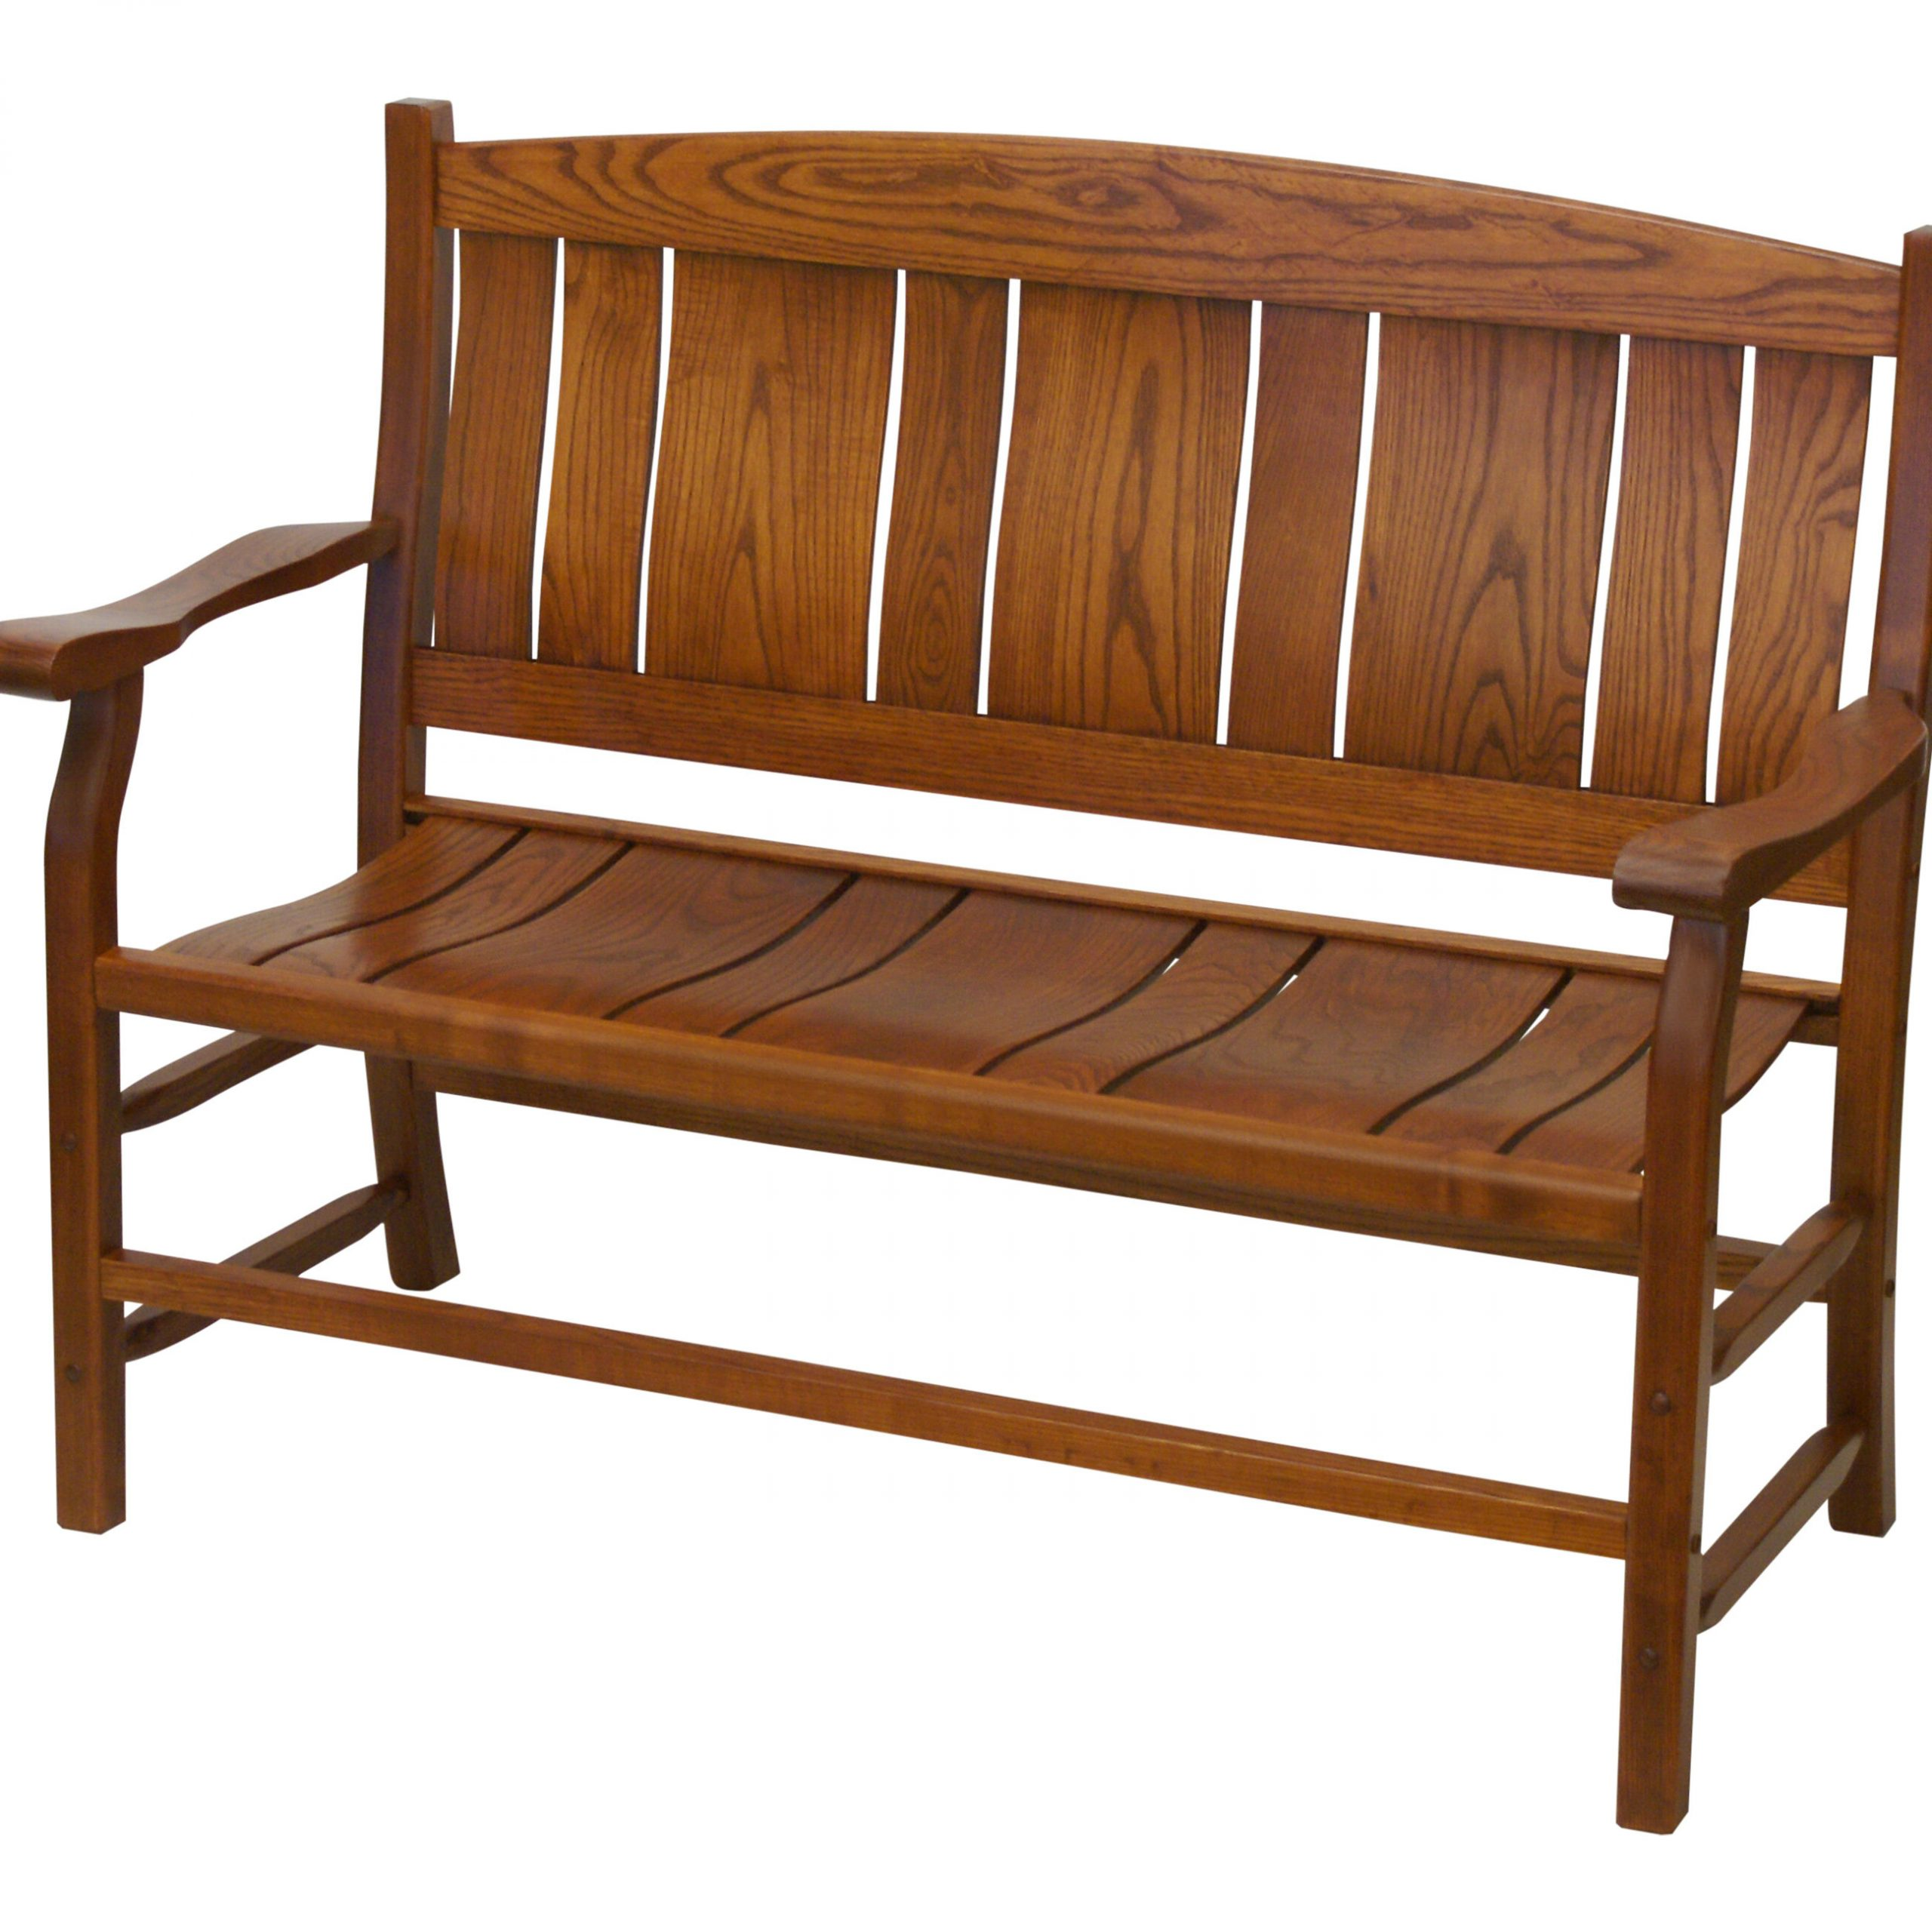 Fashionable Maliyah Wooden Garden Benches Within Grindle Slat Back Wooden Garden Bench (View 12 of 30)